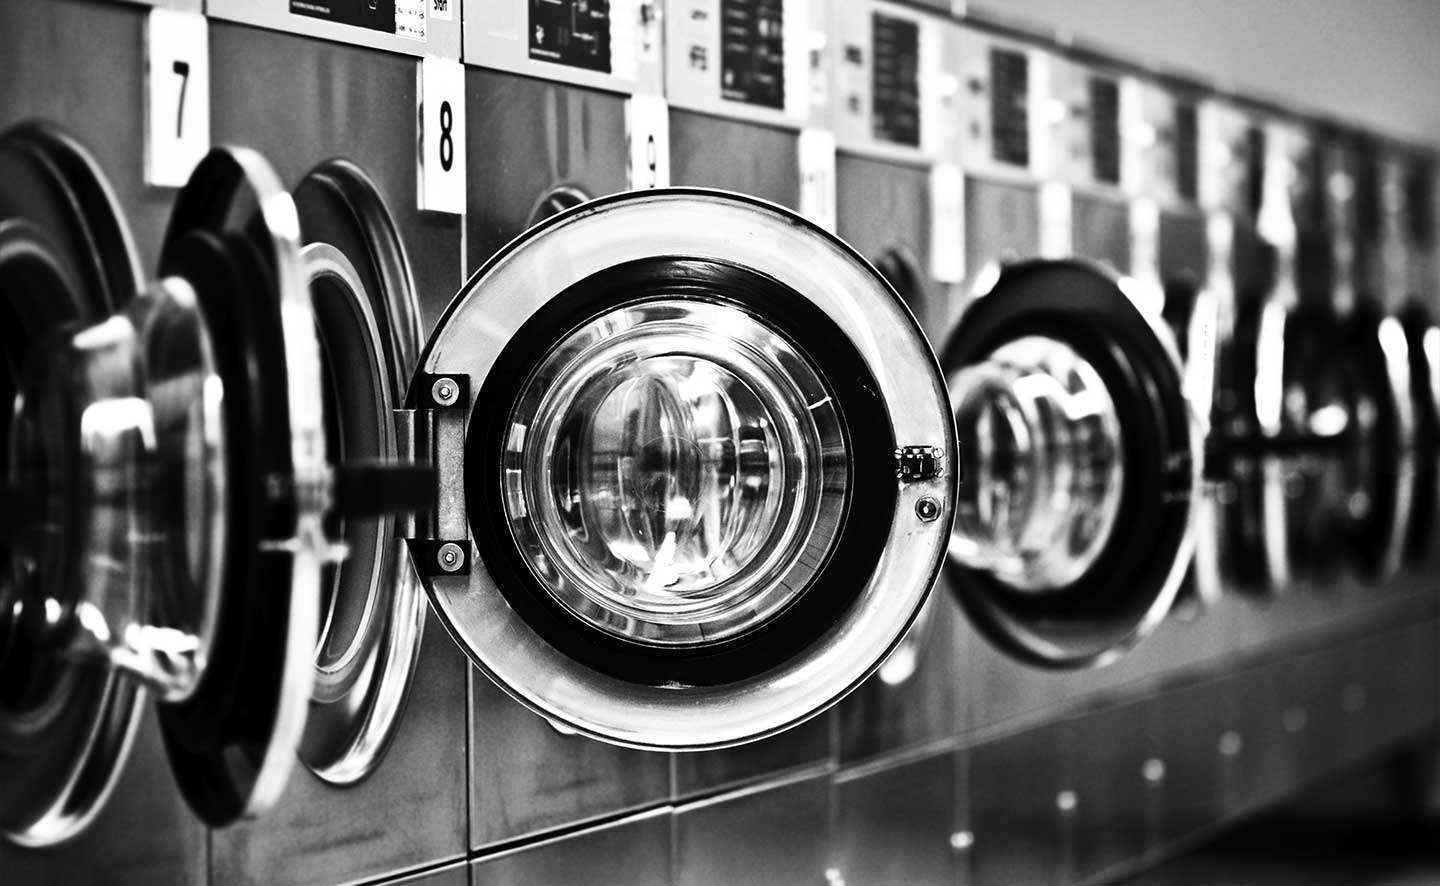 Home Laguna Laundry And Linen Services